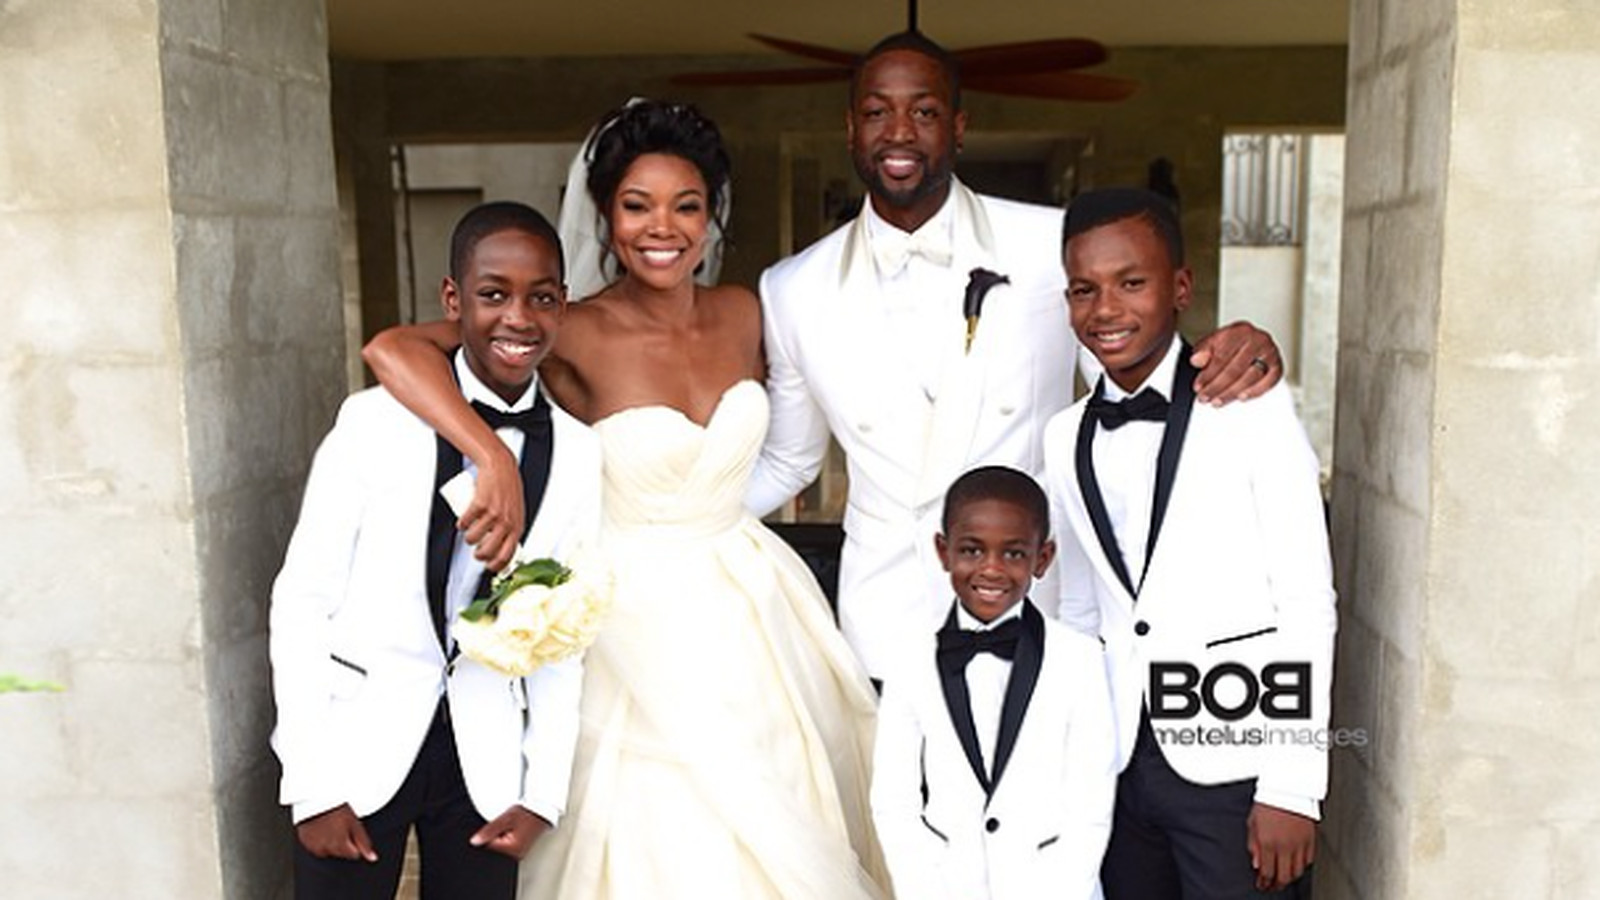 A look at the guest list from Dwyane Wade and Gabrielle Union's wedding - Hot Hot Hoops